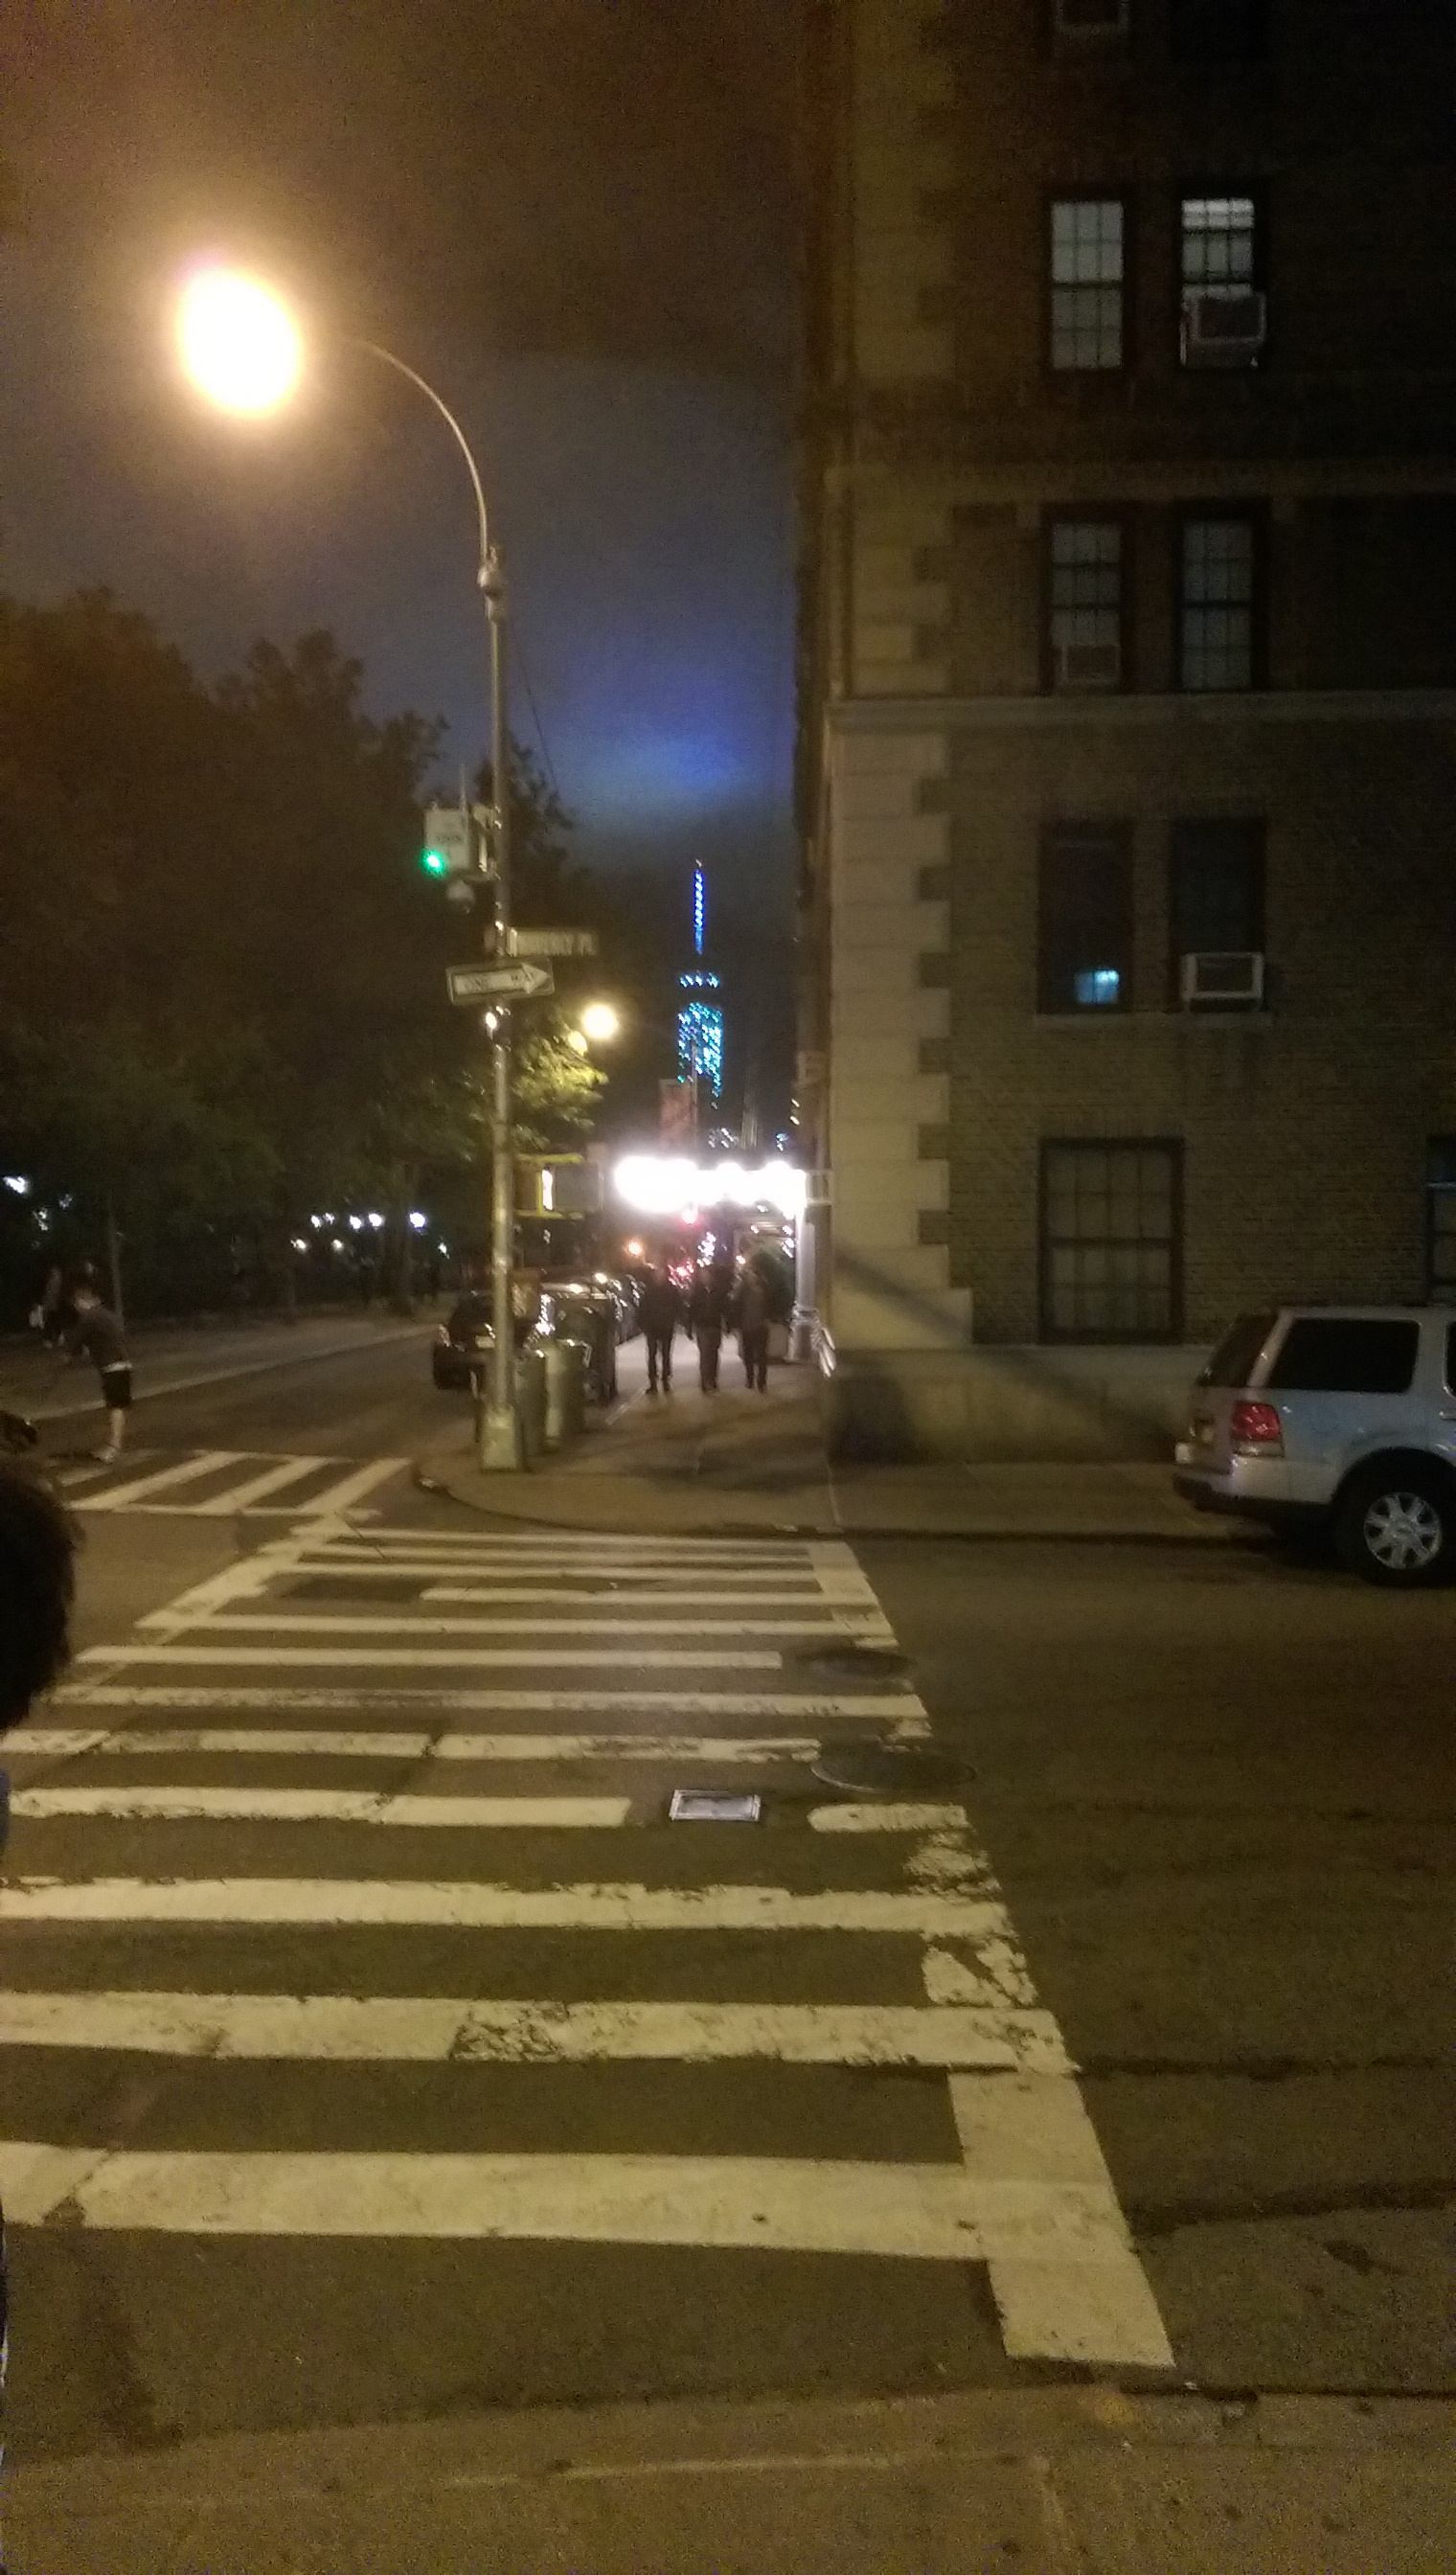 The corner of Waverly Place and Washington Square W at night... that explains all the lit buildings I bet.